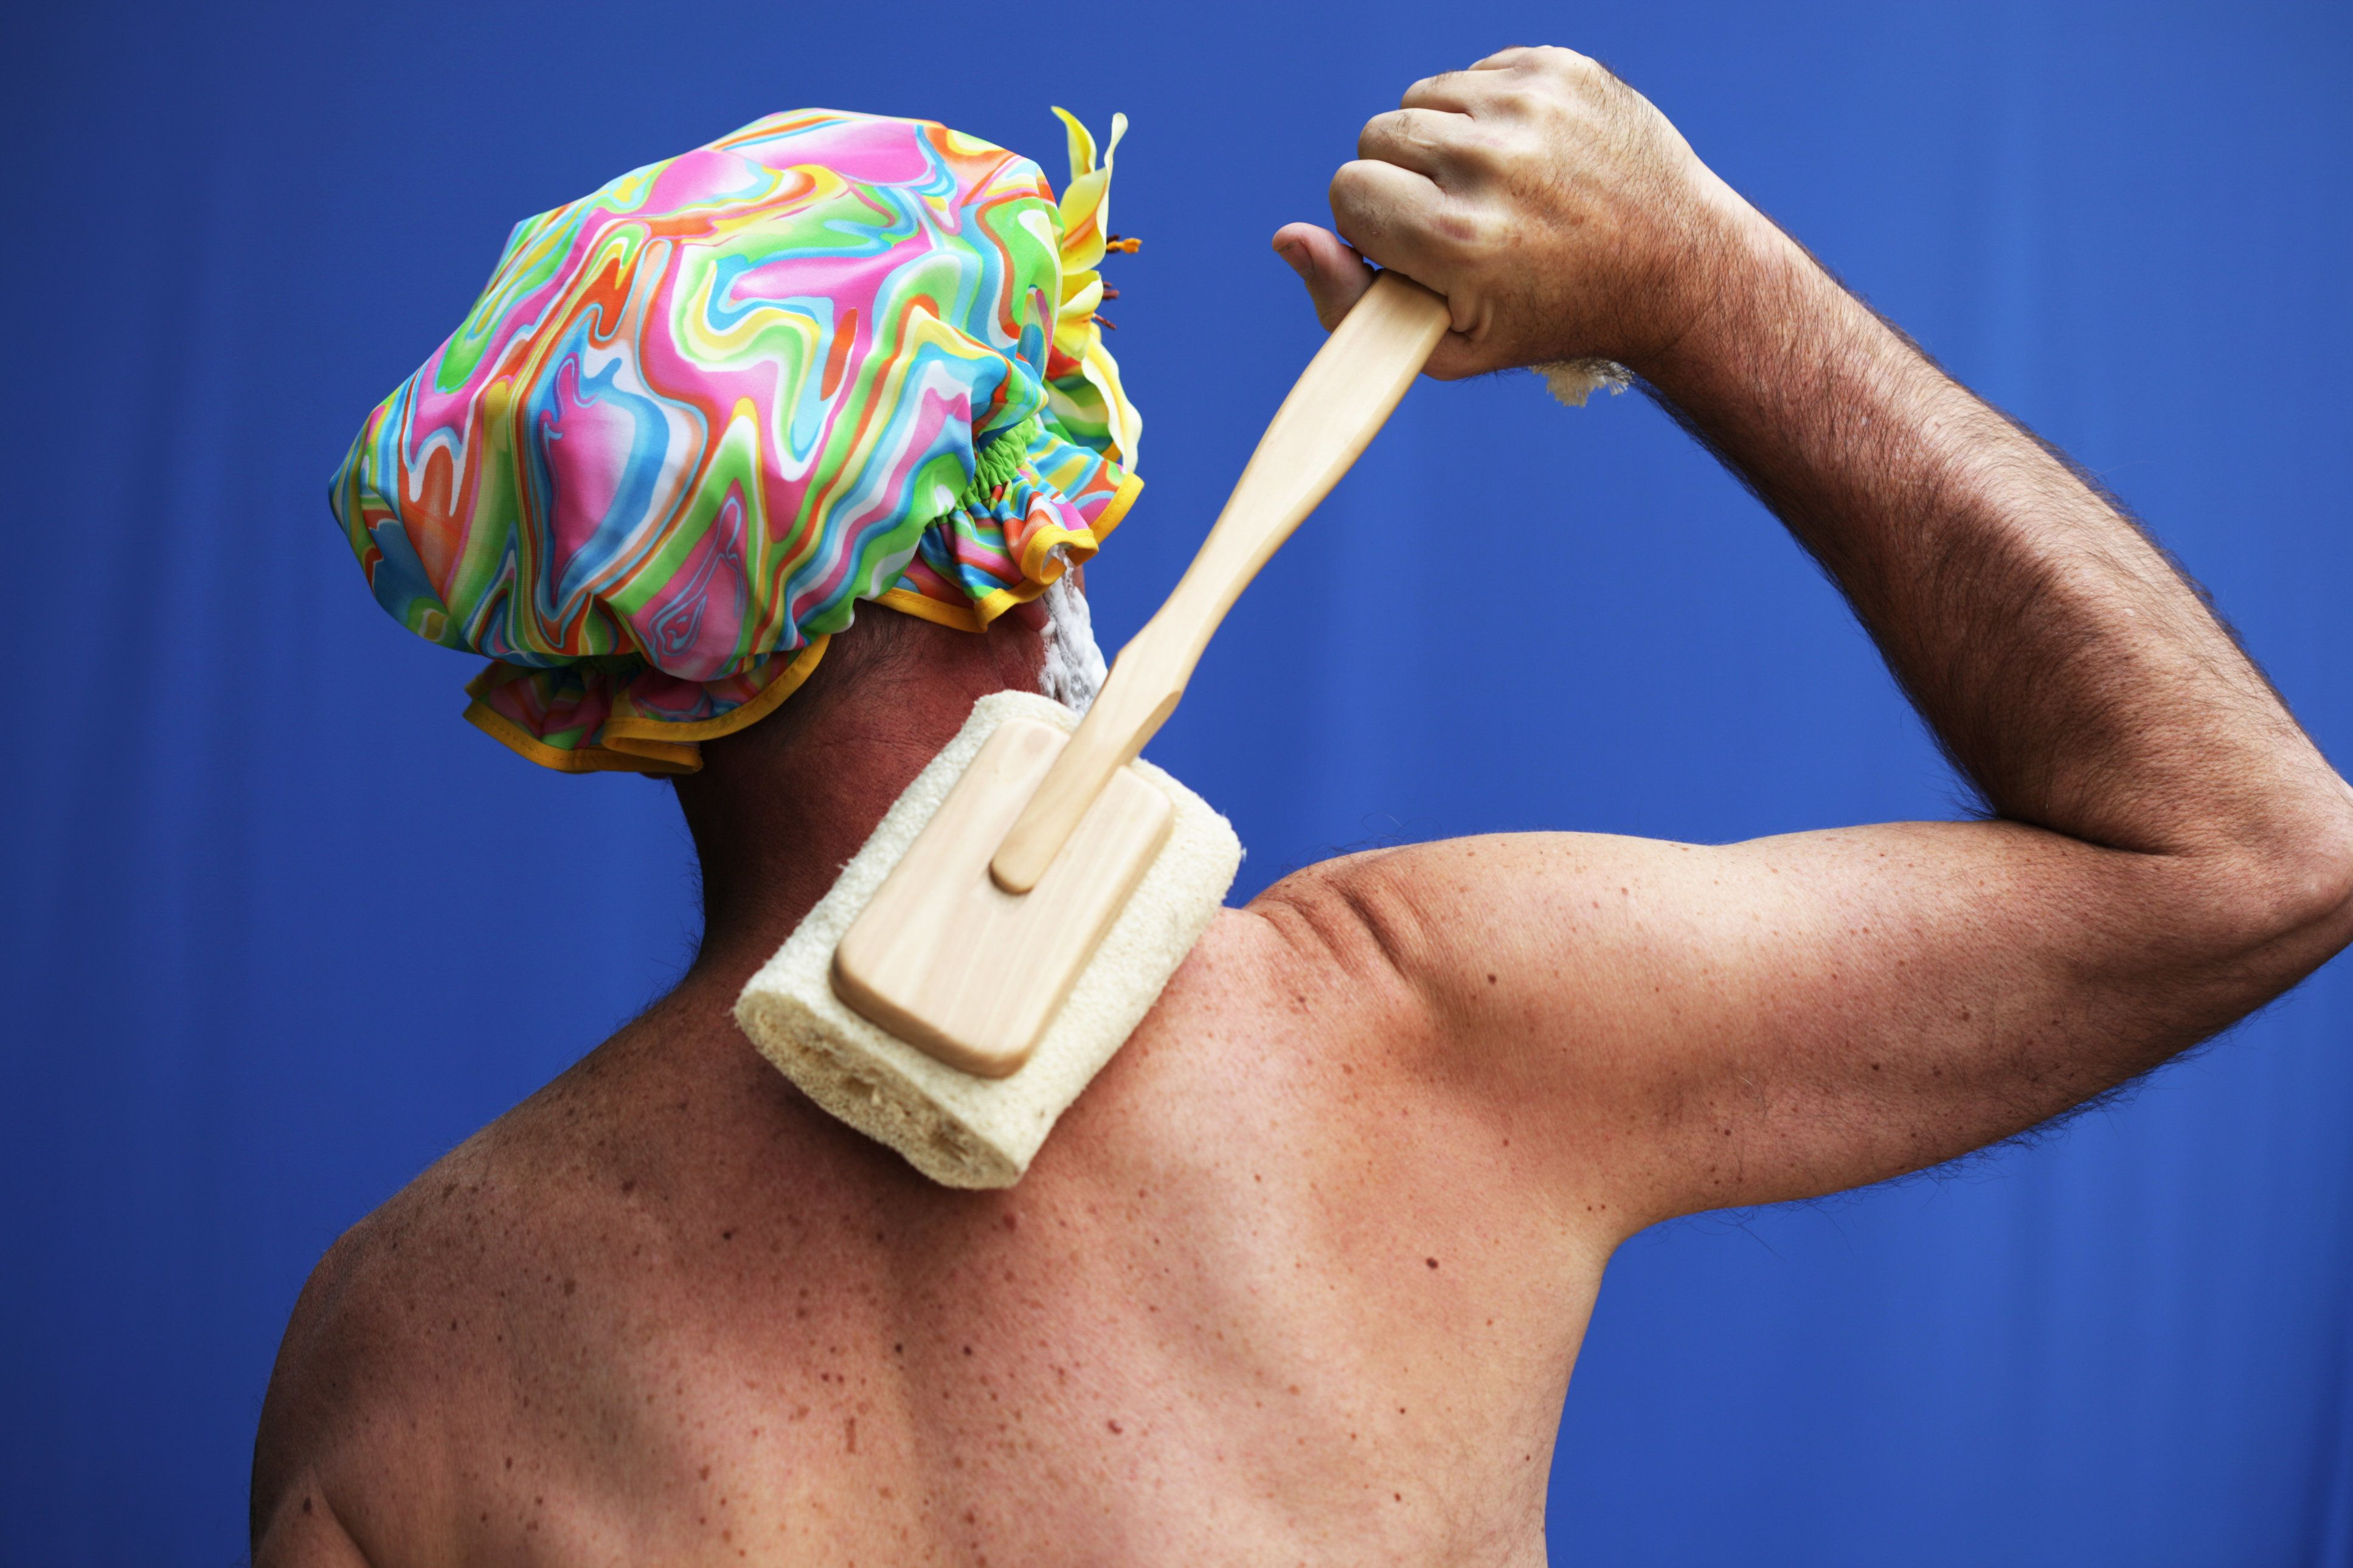 Man with retro shower cap washing his back with loofah